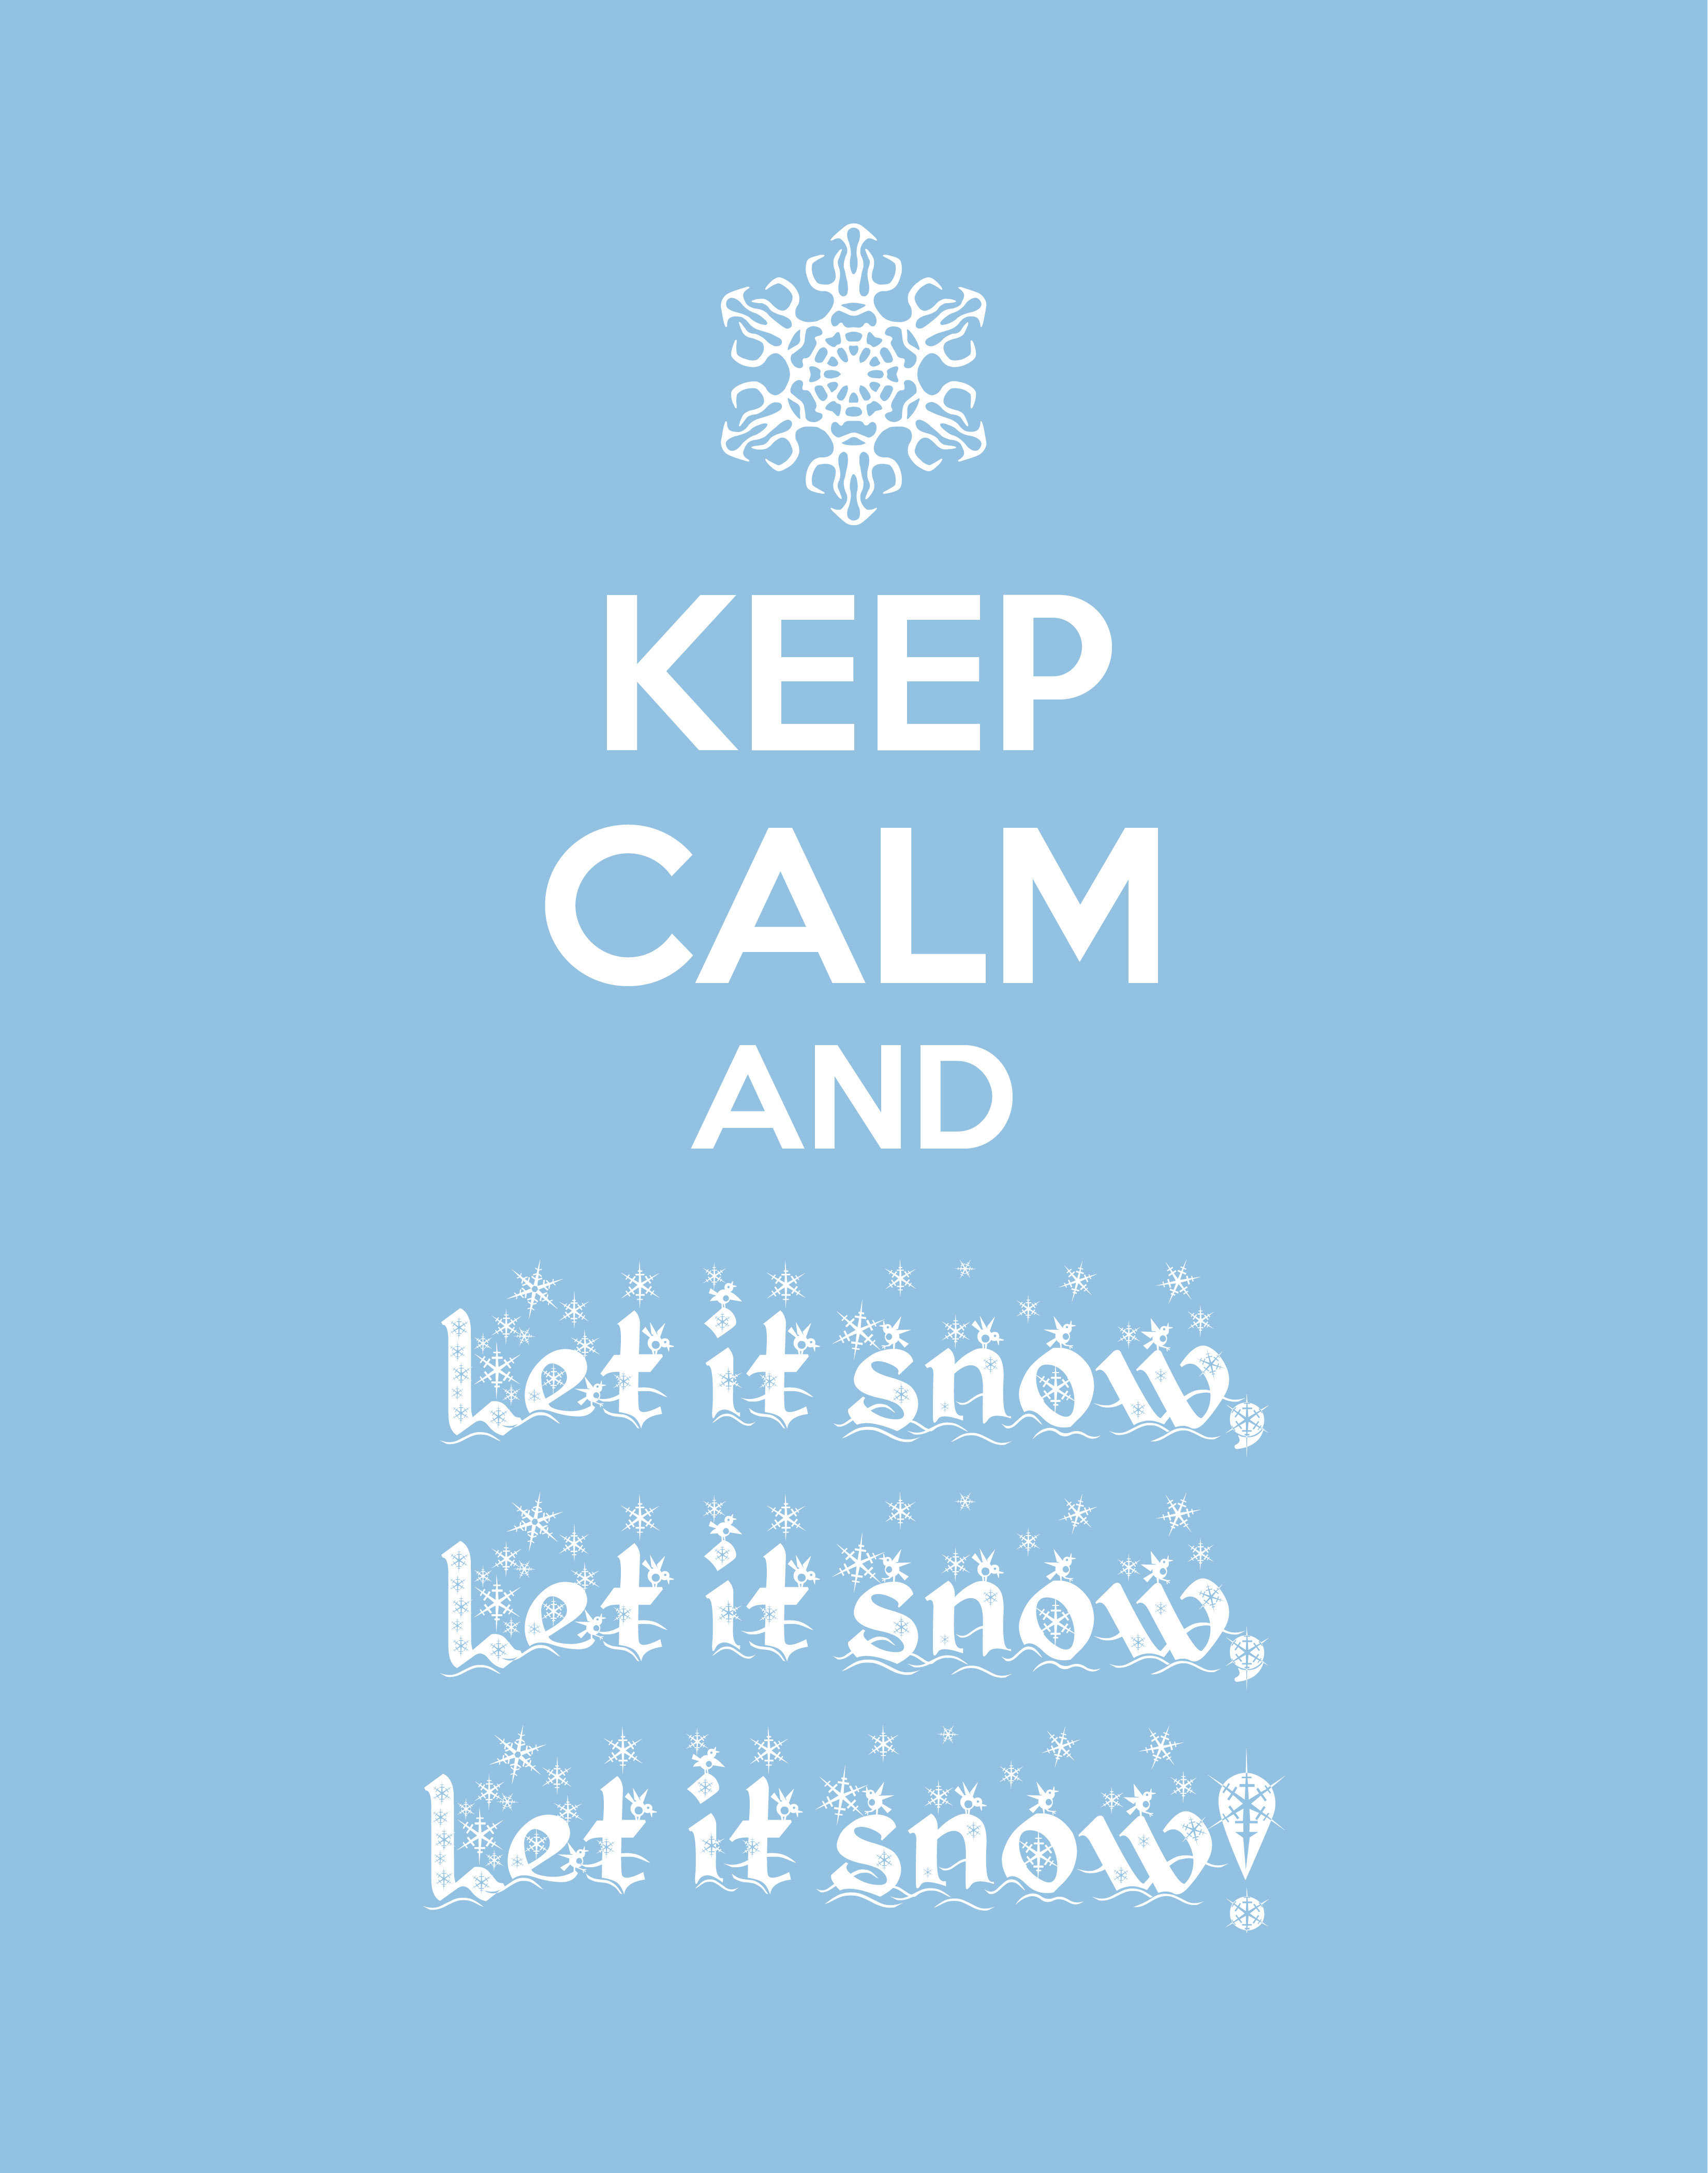 Minions Wallpapers With Quotes Download Keep Calm And Let It Snow Free Christmas Printable